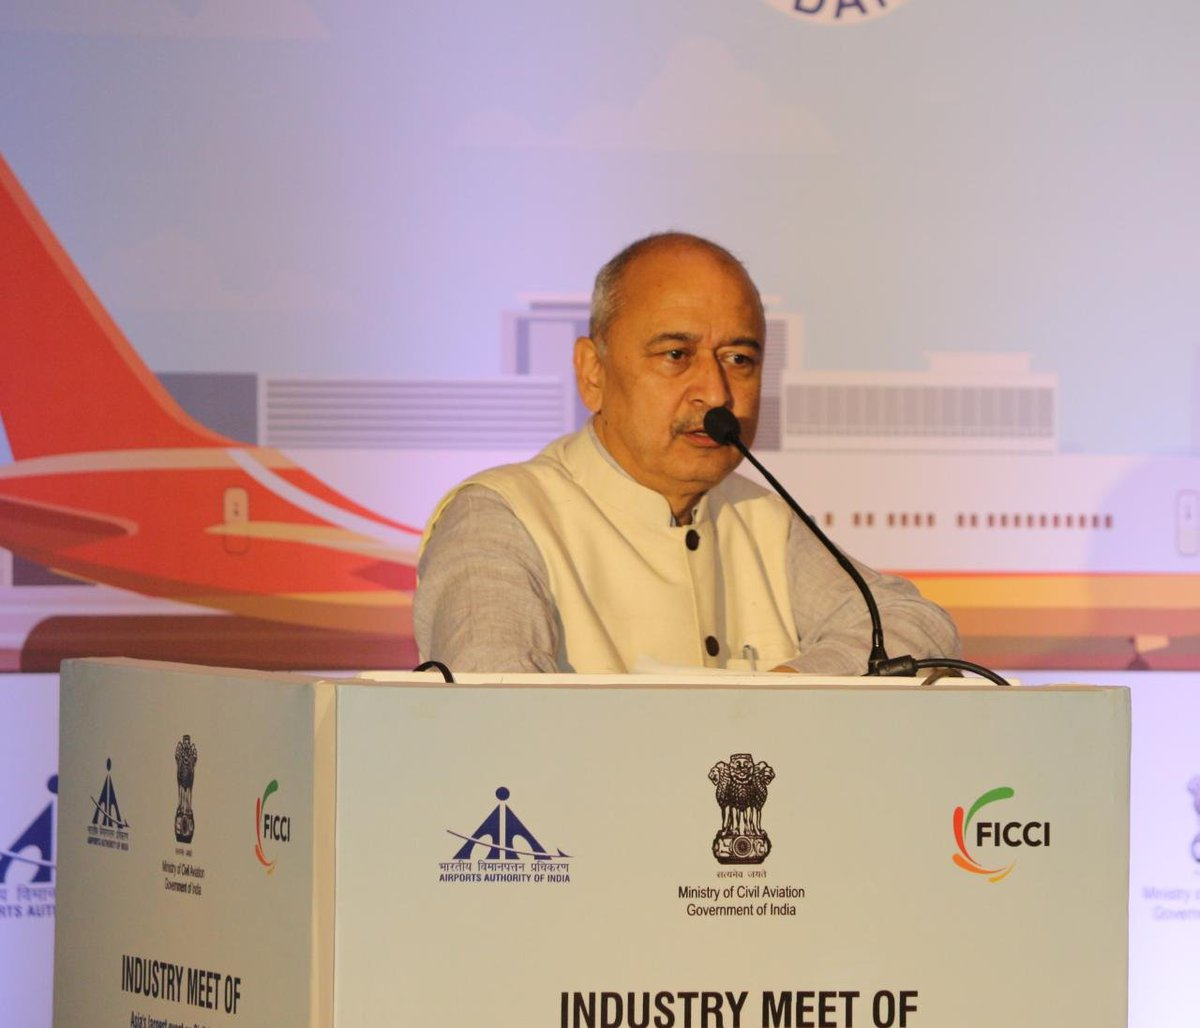 Indian aviation and technology leaders gathered in Bengaluru for industry meet ahead of #WingsIndia2020, Asia's largest civil aviation event.  #WingsIndia 2020 will be held at Begumpet Airport,  Hyderabad from 12-15 March 2020.   https://pib.gov.in/PressReleasePage.aspx?PRID=1599762#…pic.twitter.com/malR2SV50Y